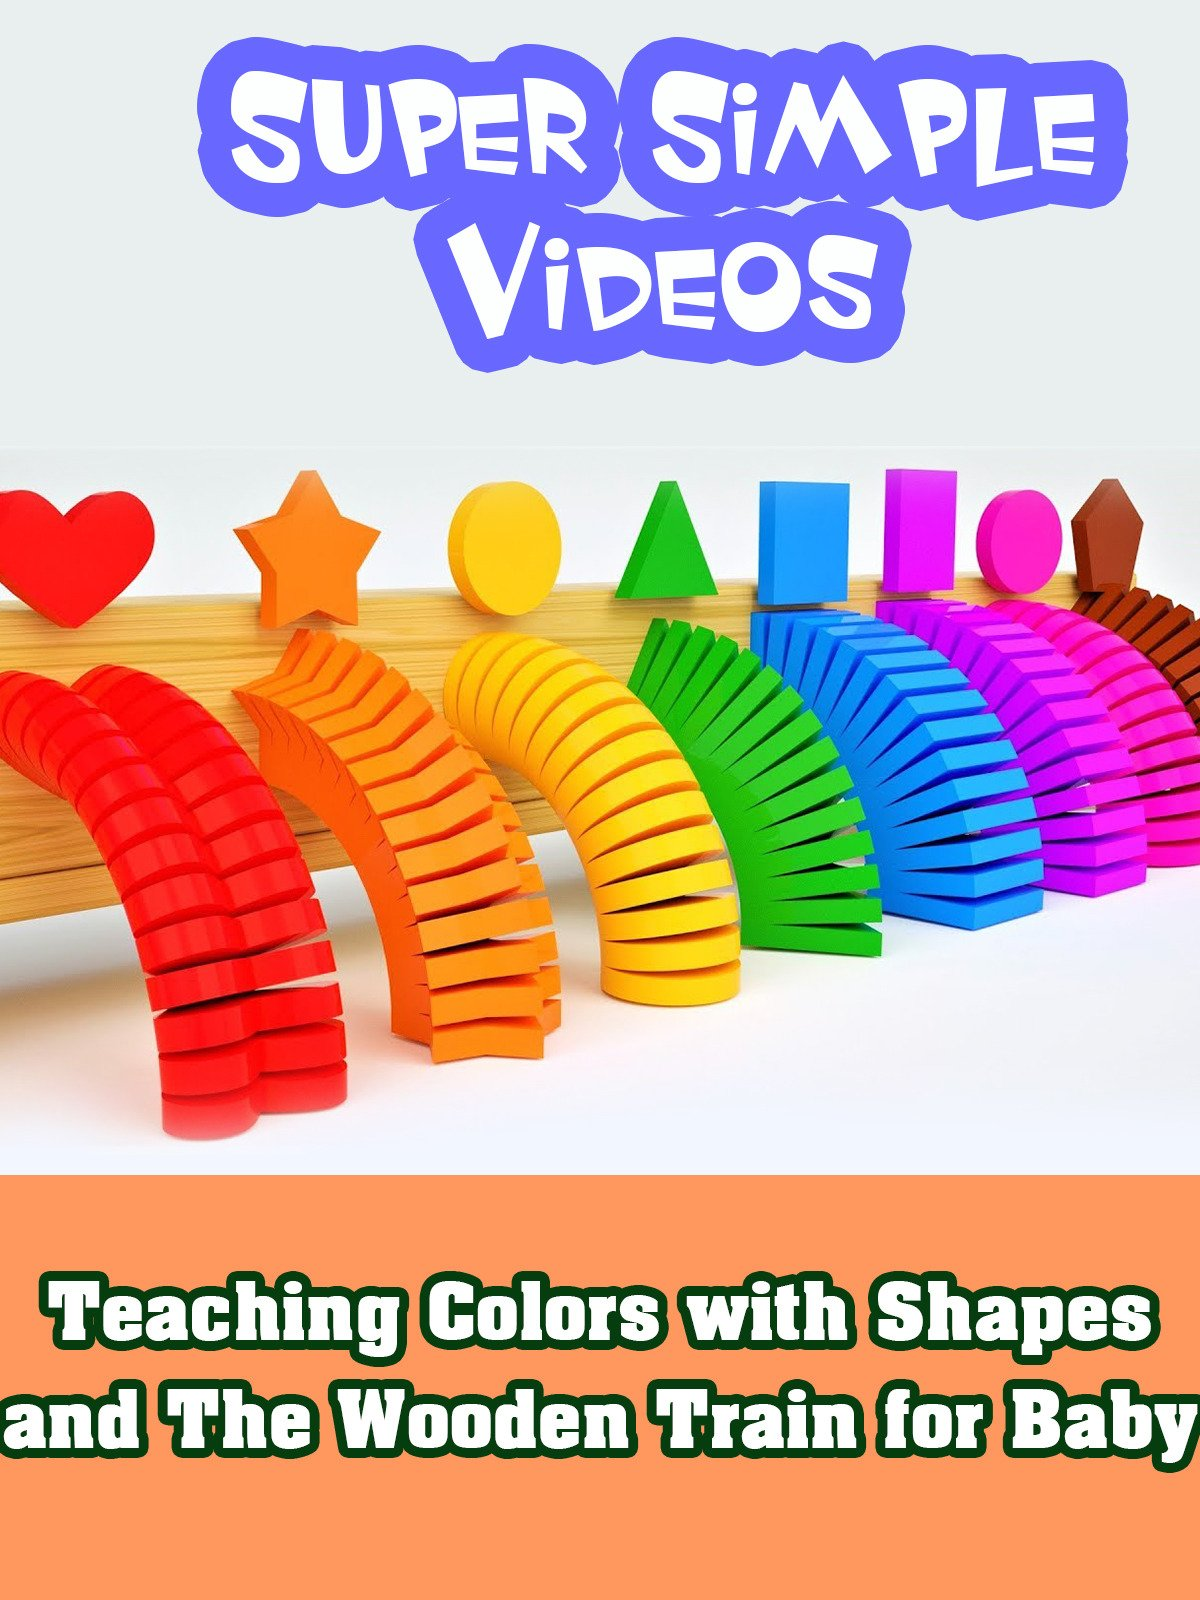 Teaching Colors with Shapes and The Wooden Train for Baby